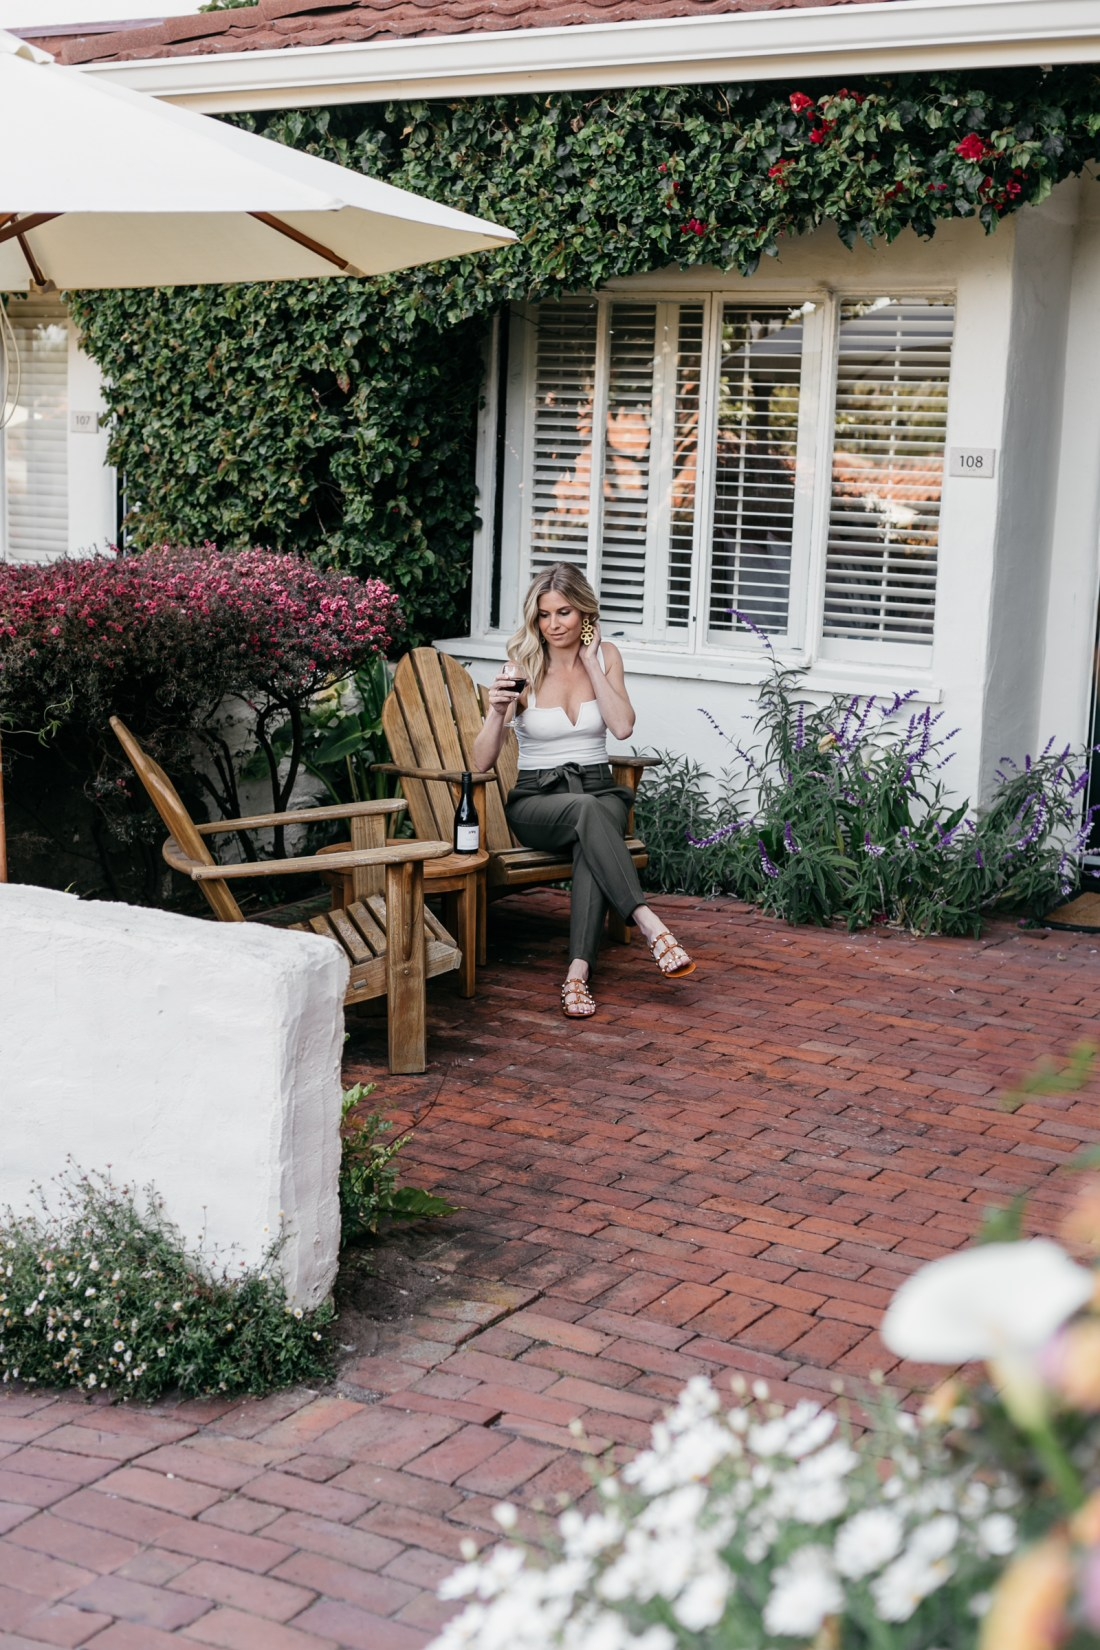 Carmel By The Sea, CA - WHERE TO STAY